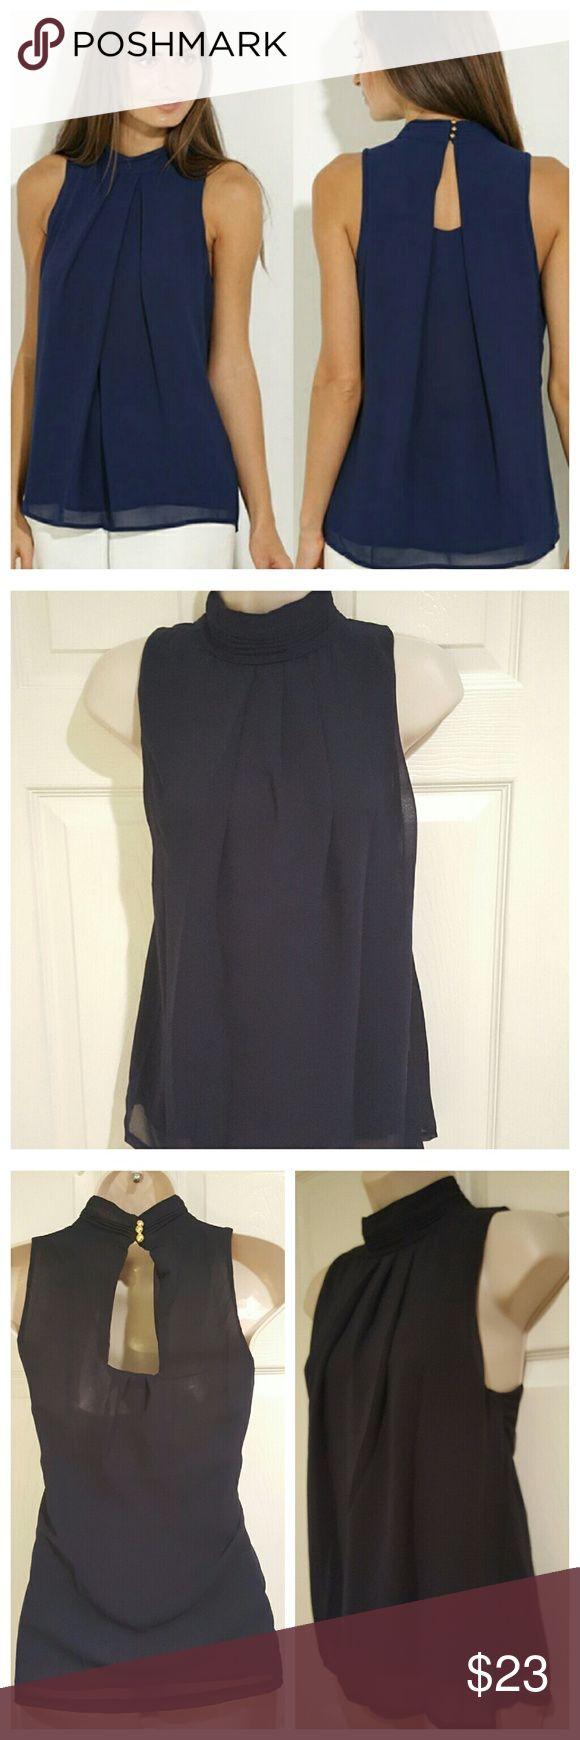 NWOT Navy Chiffon Blouse New without tags. Dark navy blue color with 3 gold colored buttons at back of neck closure. Chiffon layered sleeveless blouse. Small upper back opening. Great for day/night out, can be dressed up with a blazer for professional look.  Multiple sizes available, see 4th pic for size chart. Tops Blouses